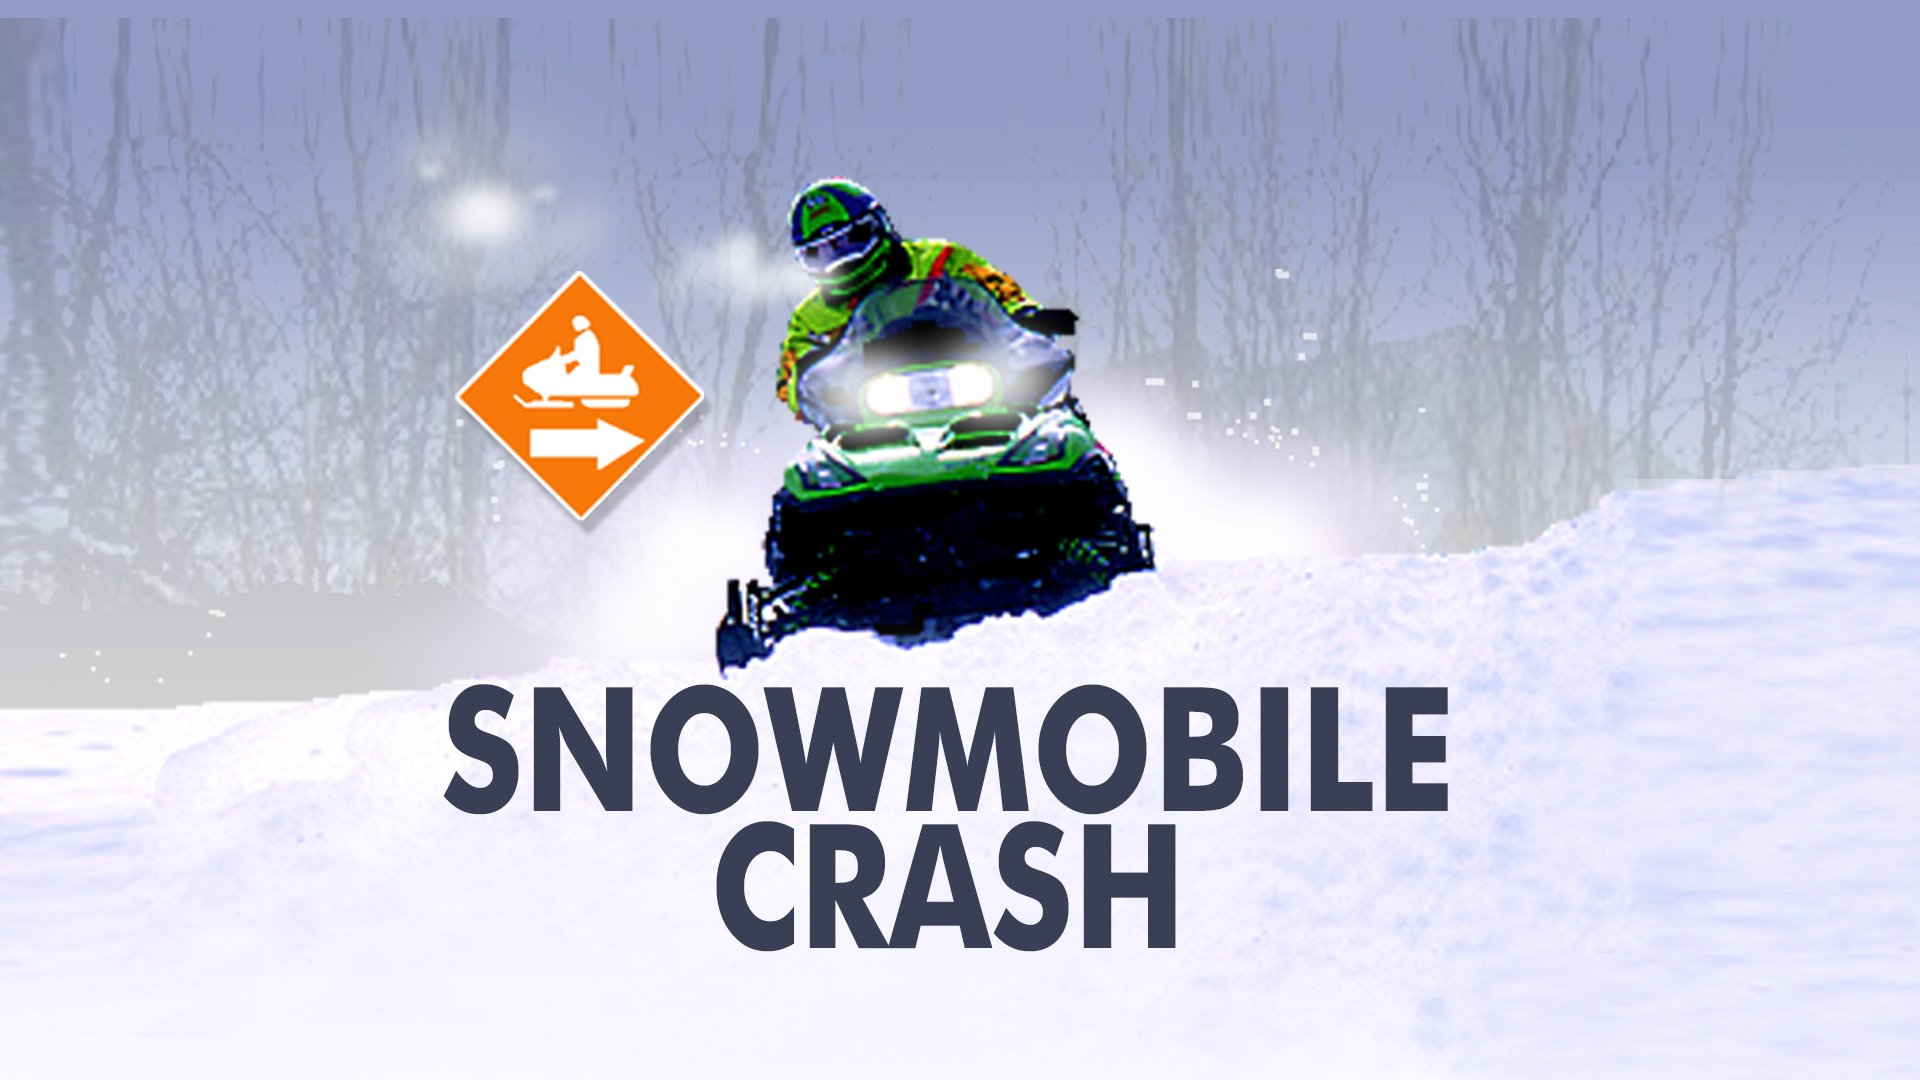 Man in Serious Condition After Snowmobile Crash in Chippewa